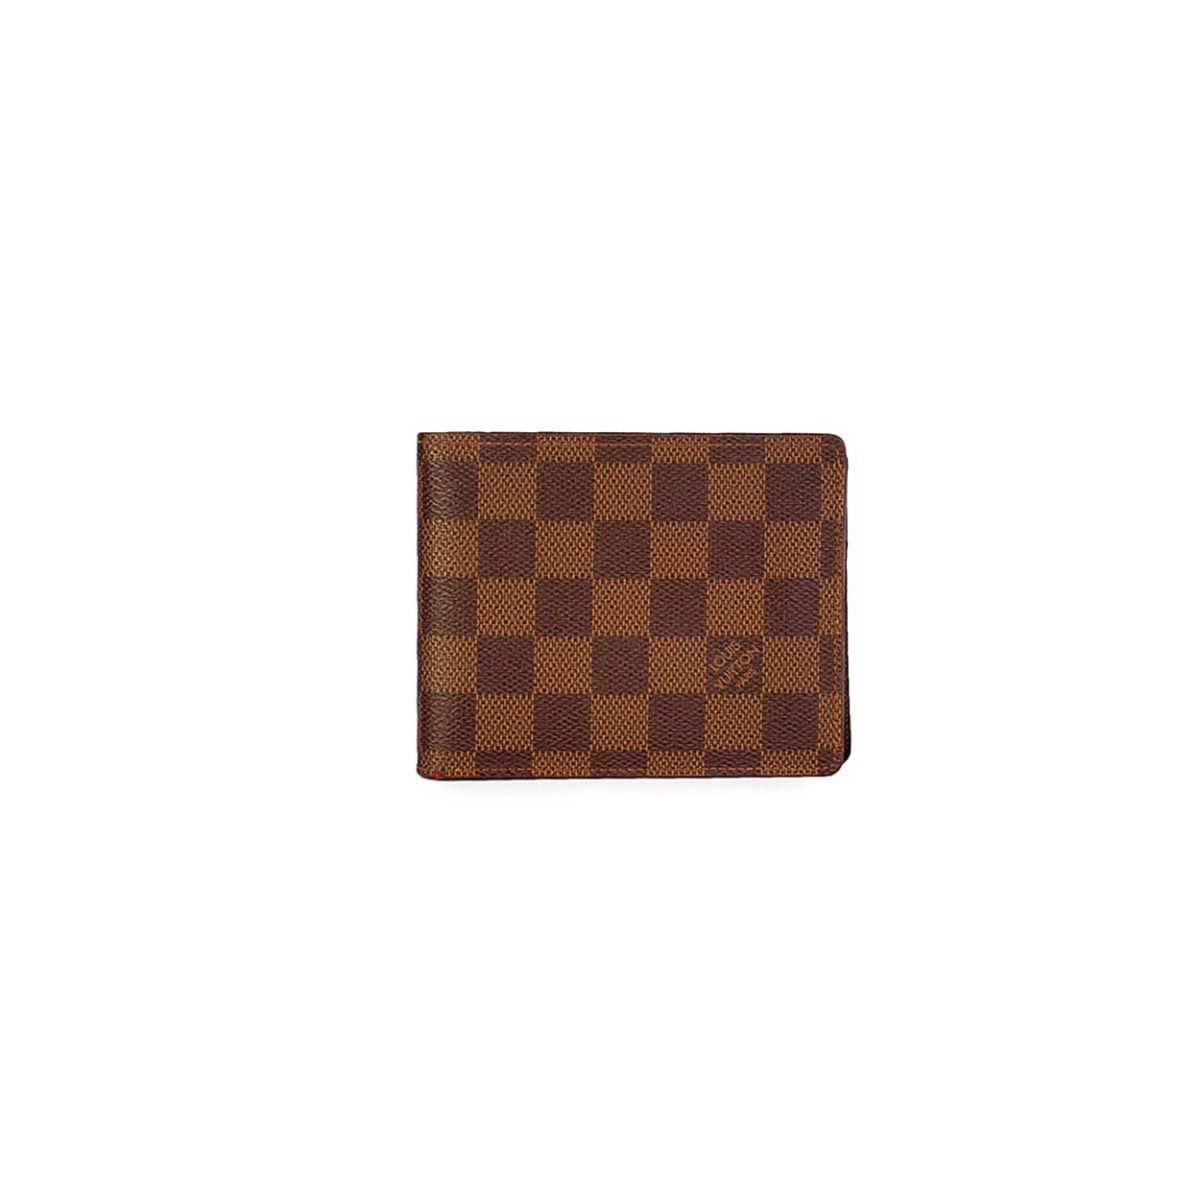 LOUIS VUITTON Damier Ebene Multiple Wallet  98566167b4e